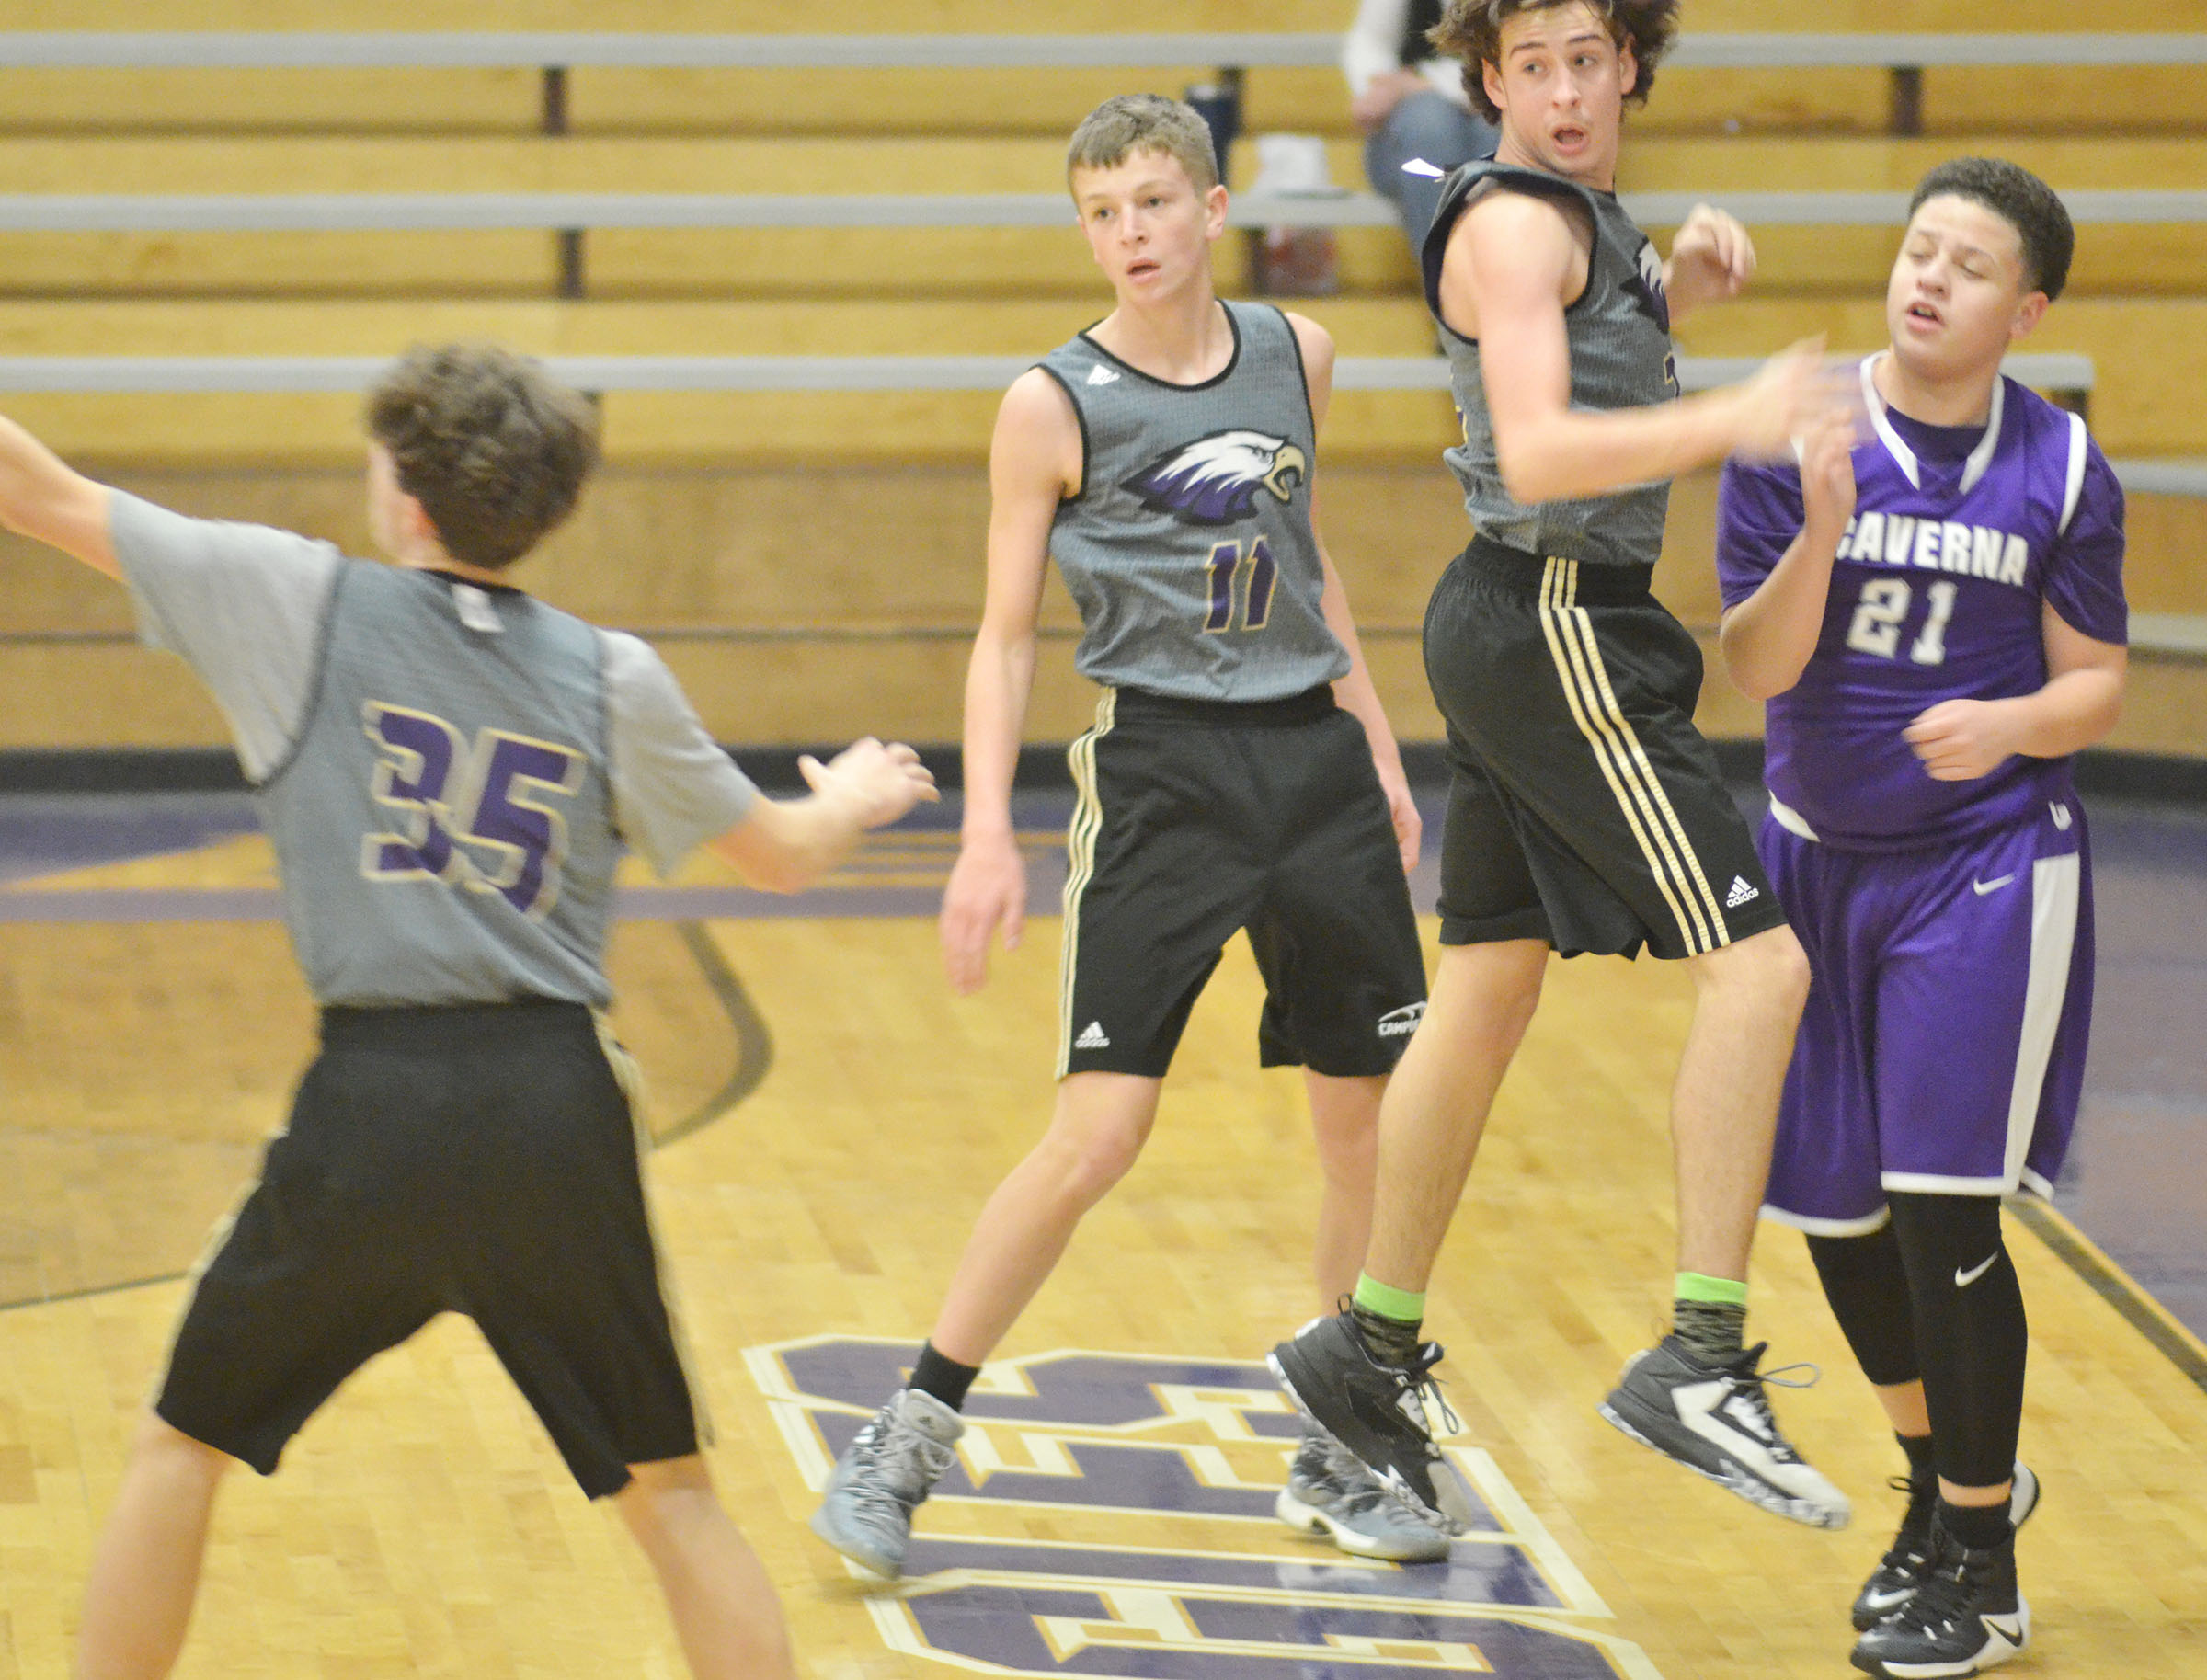 CHS freshman Noah Hughes, center, and Campbellsville Middle School eighth-grader John Orberson, at right, play defense while freshman Mark Rigsby, at left, scrambles for the ball.